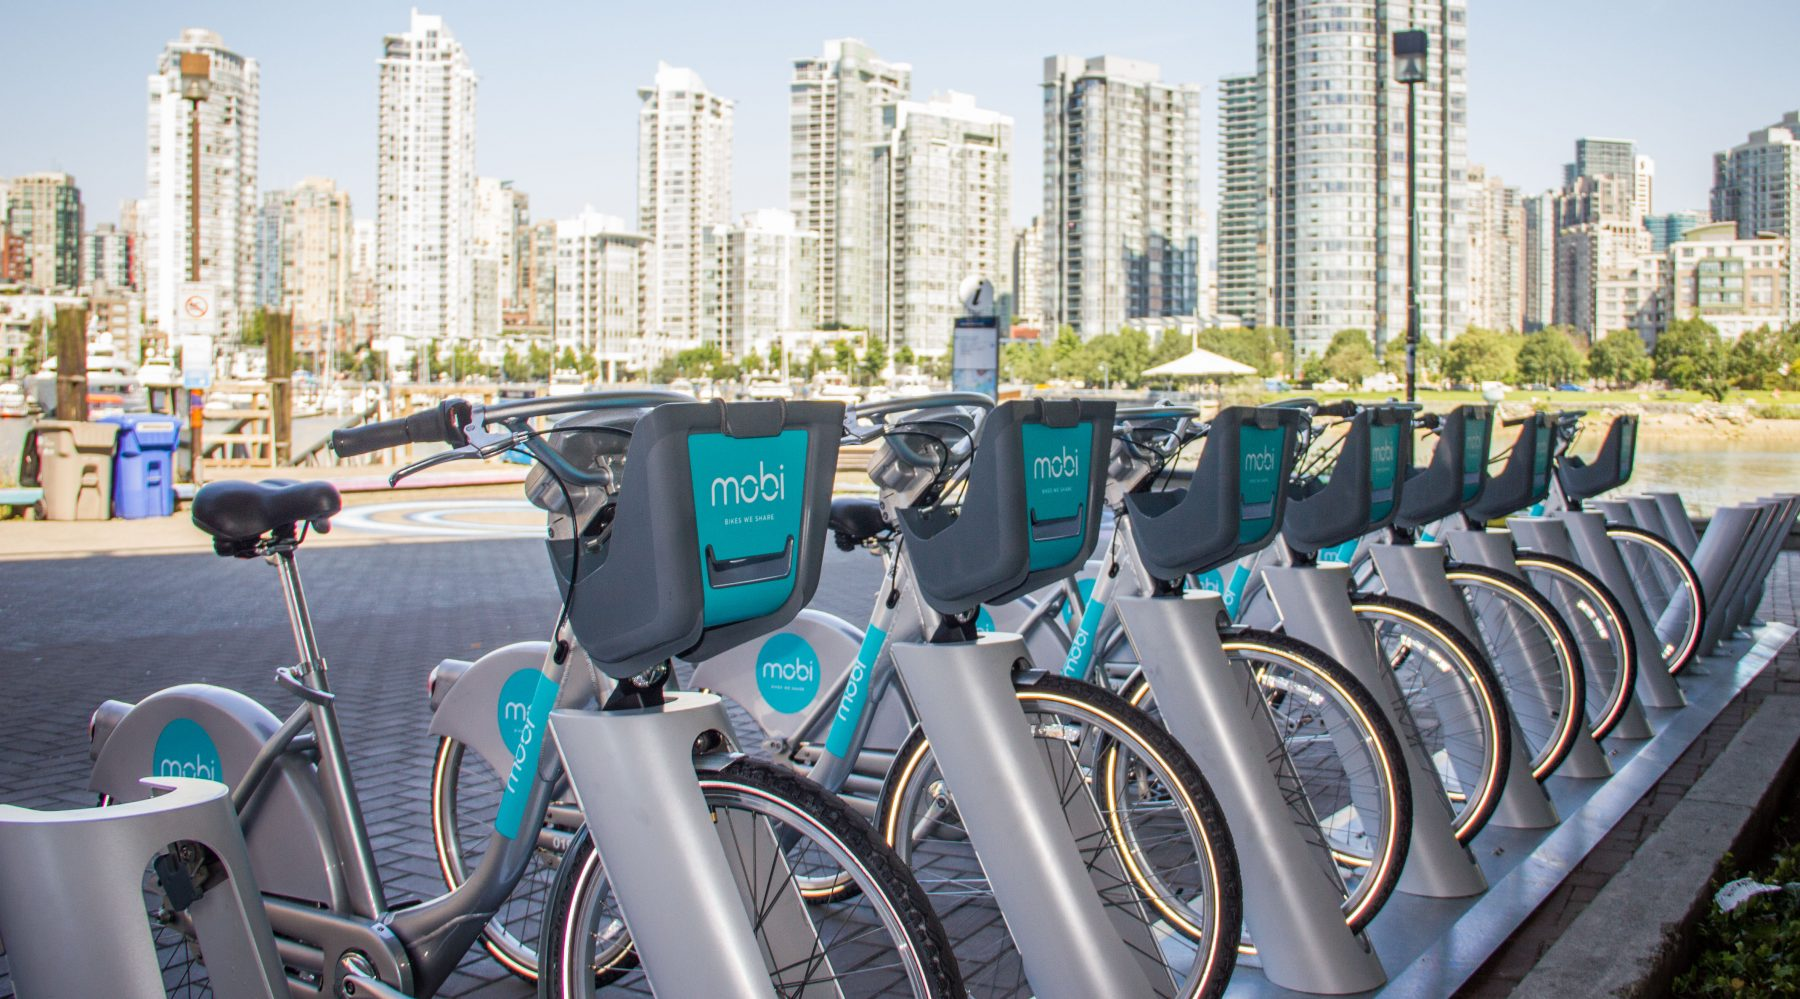 Mobi bike share lead